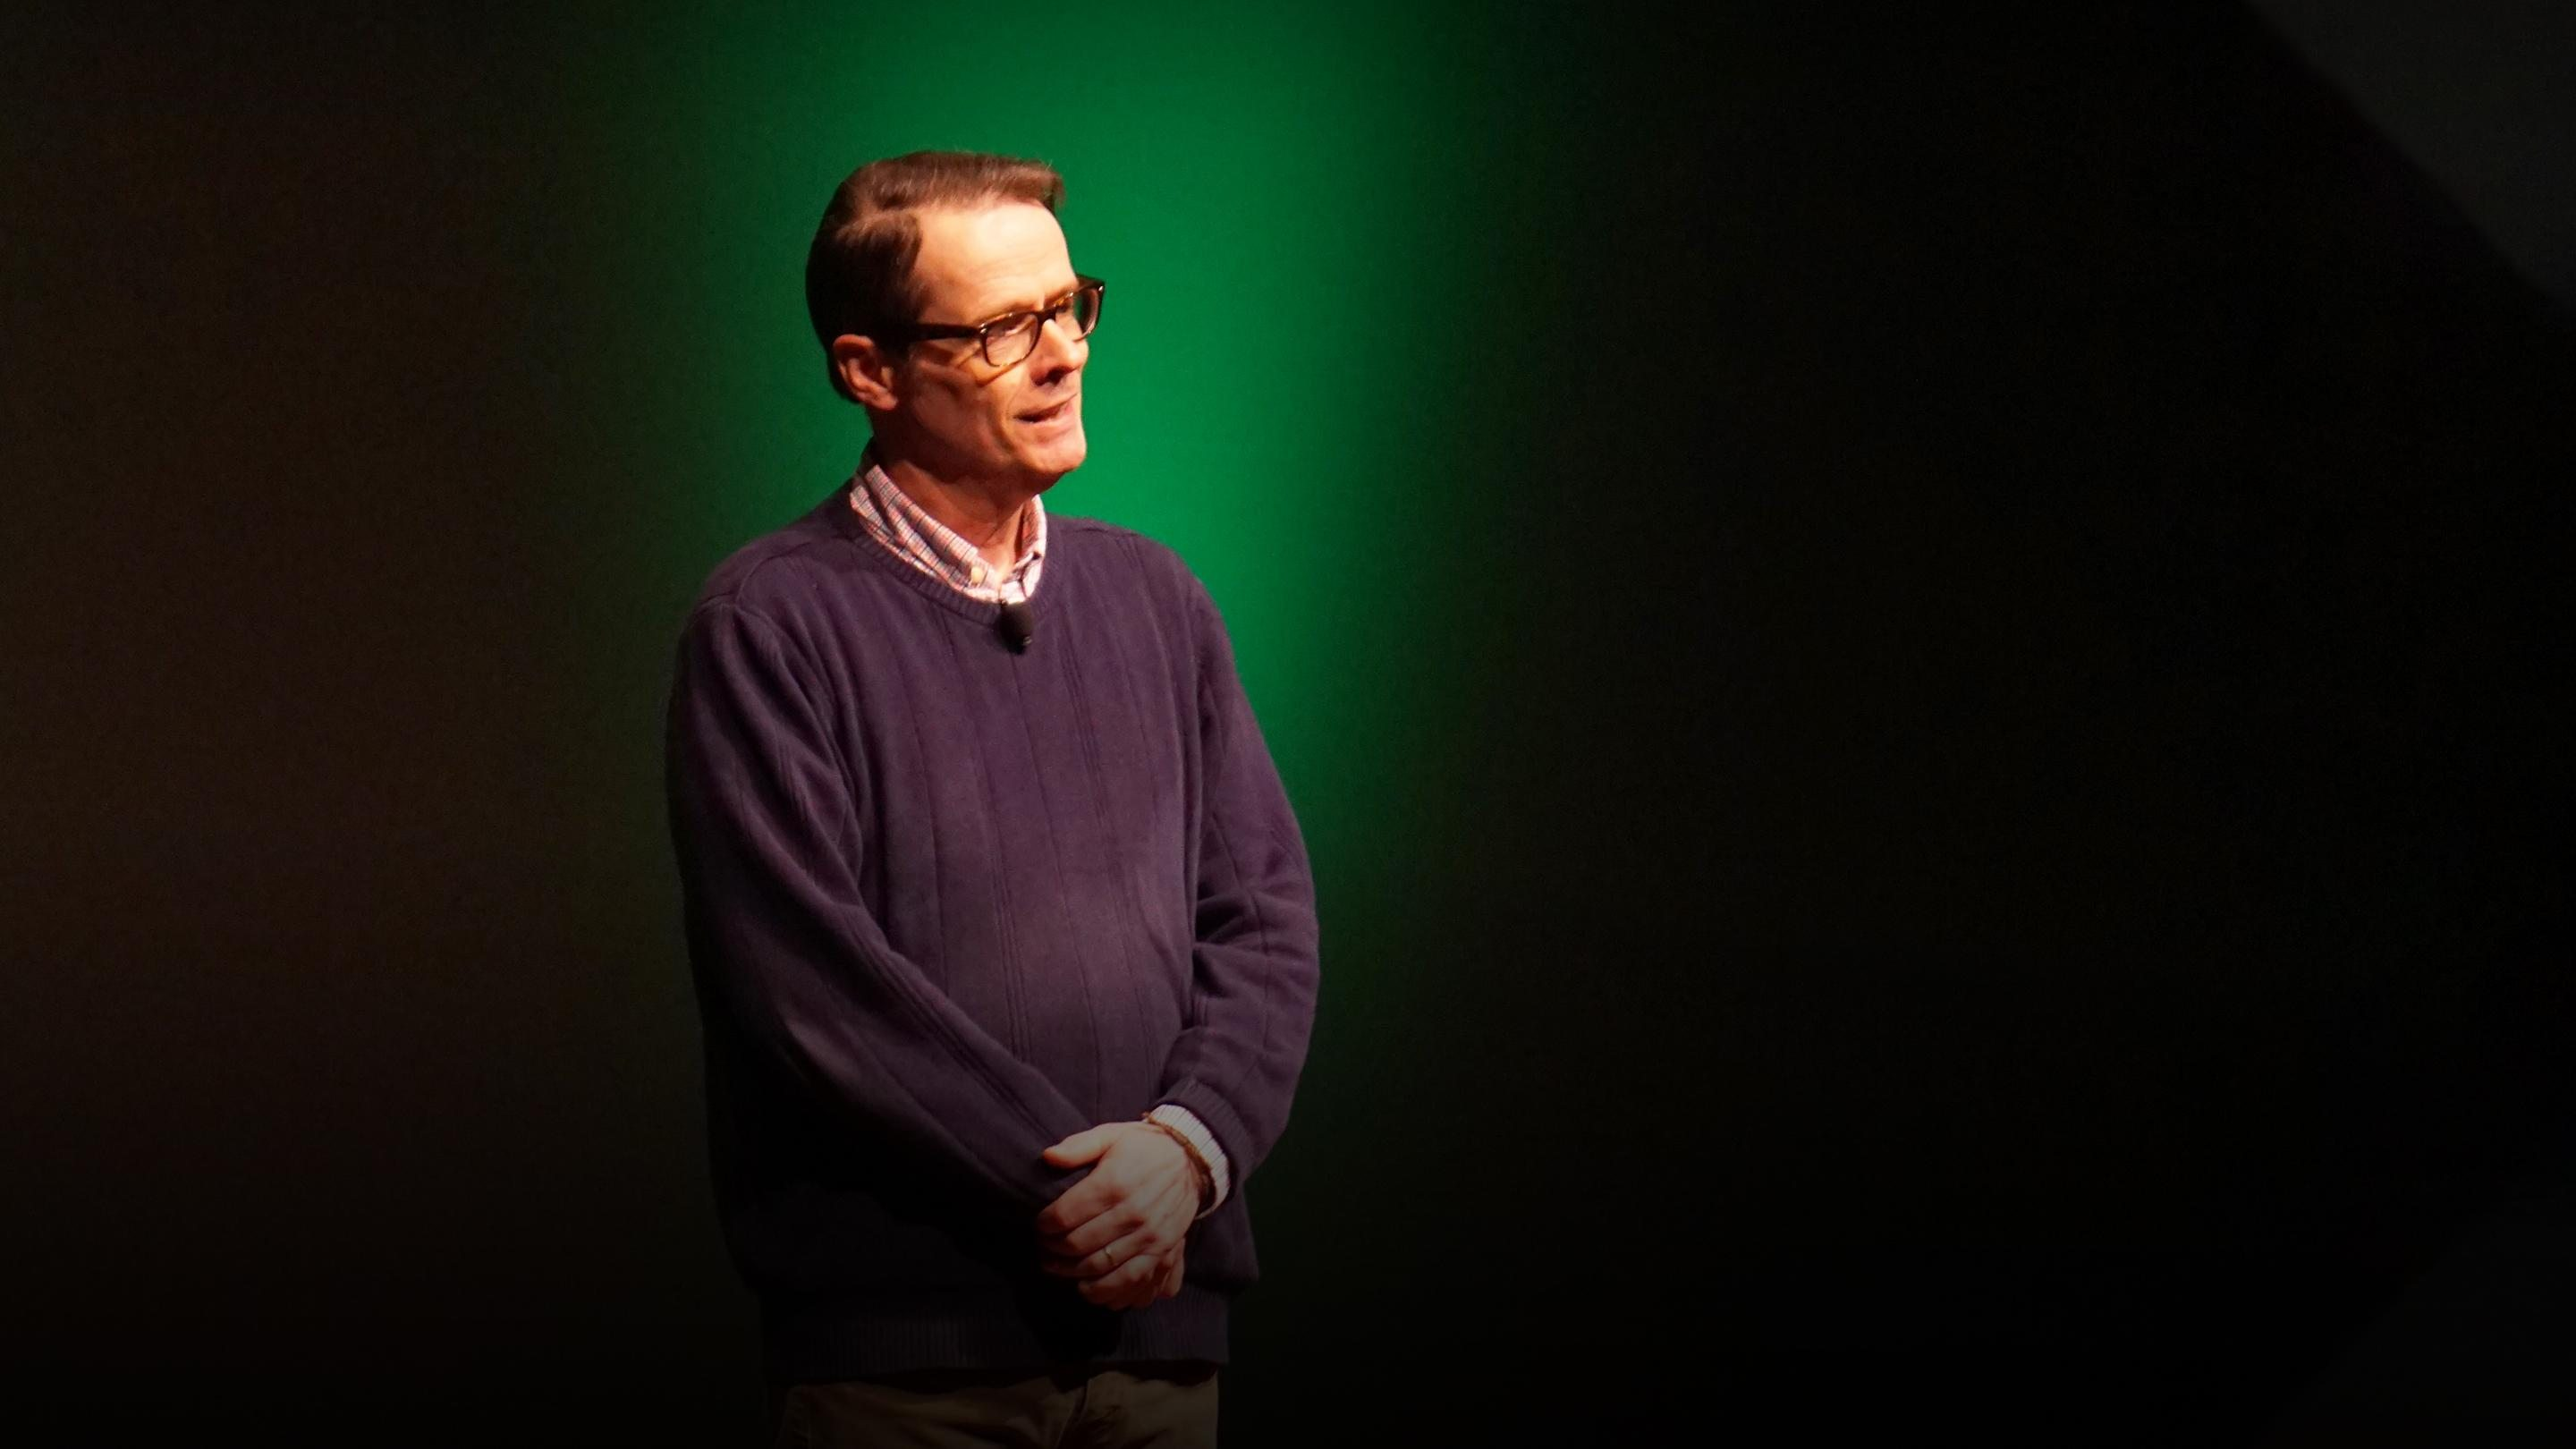 An idea from TED by Greg Anderson entitled Why there's no such thing as objective reality